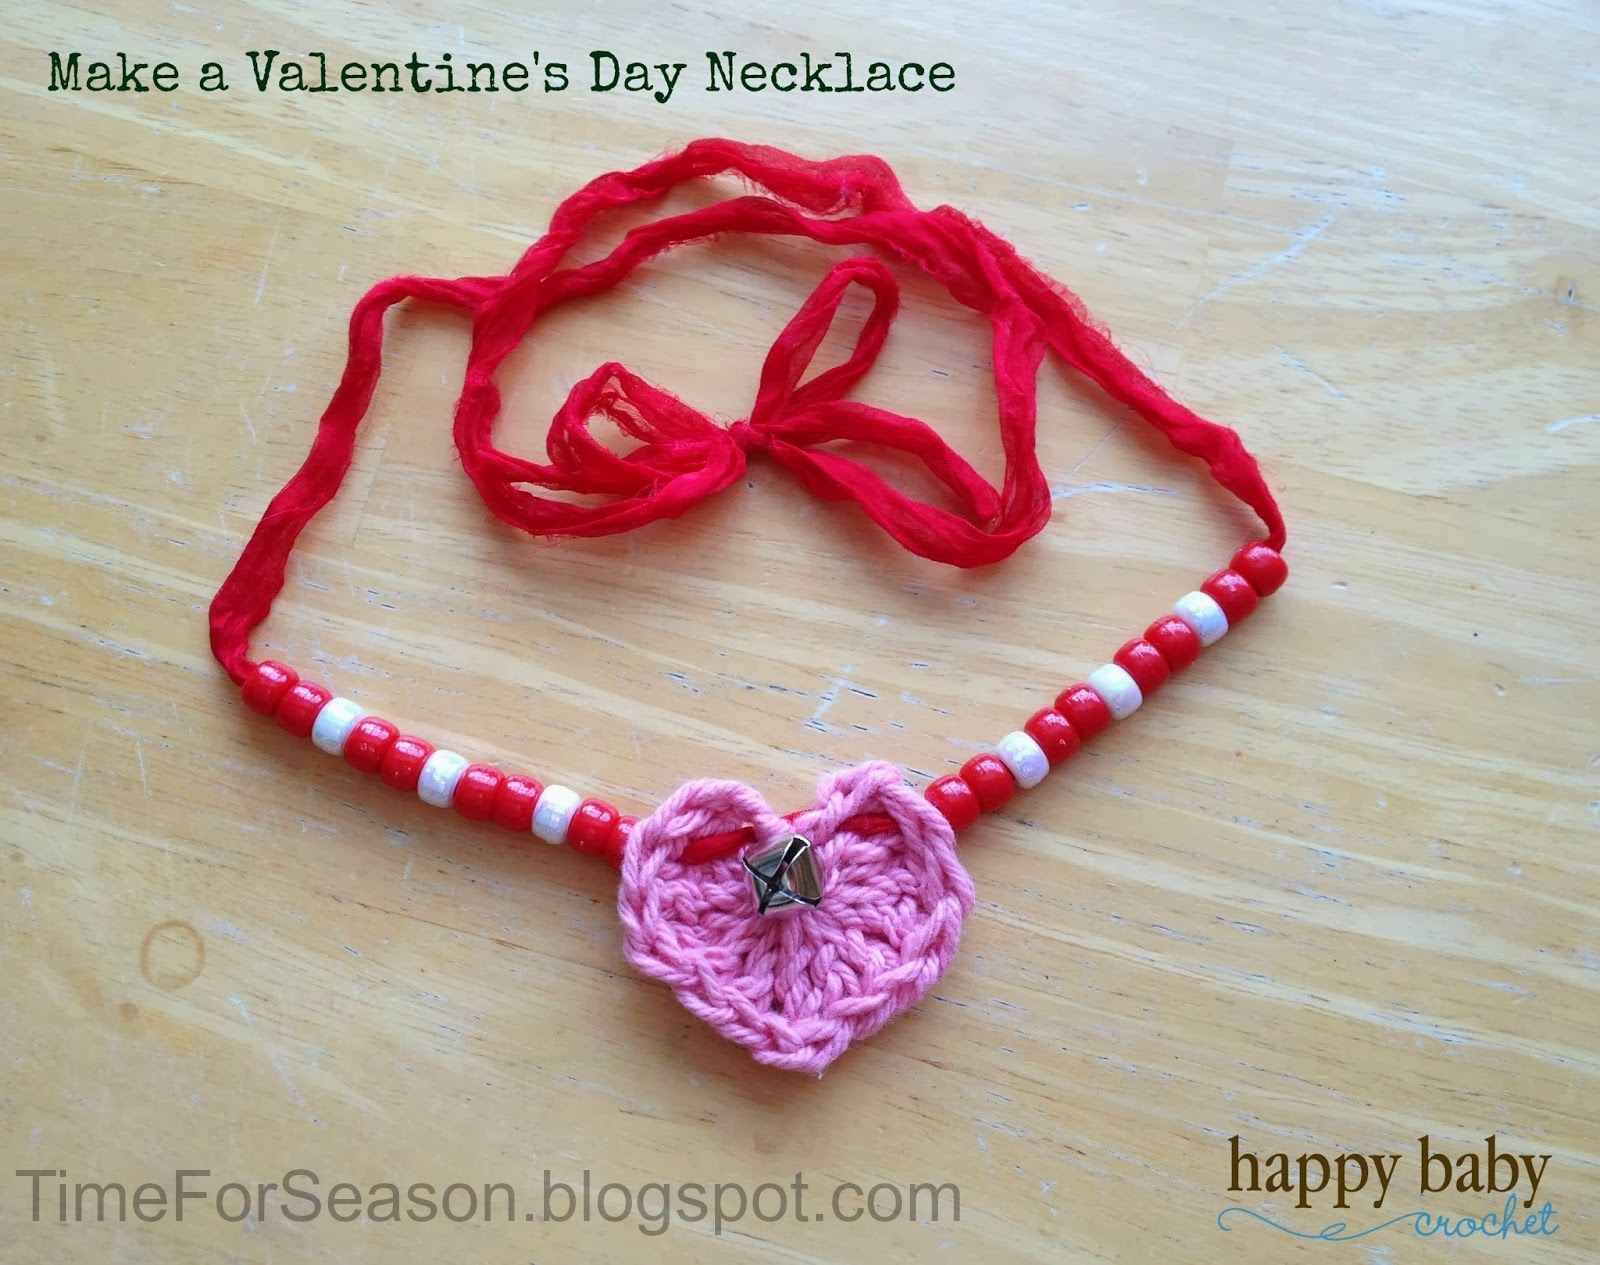 Make A crochet heart Valentine's Day Necklace